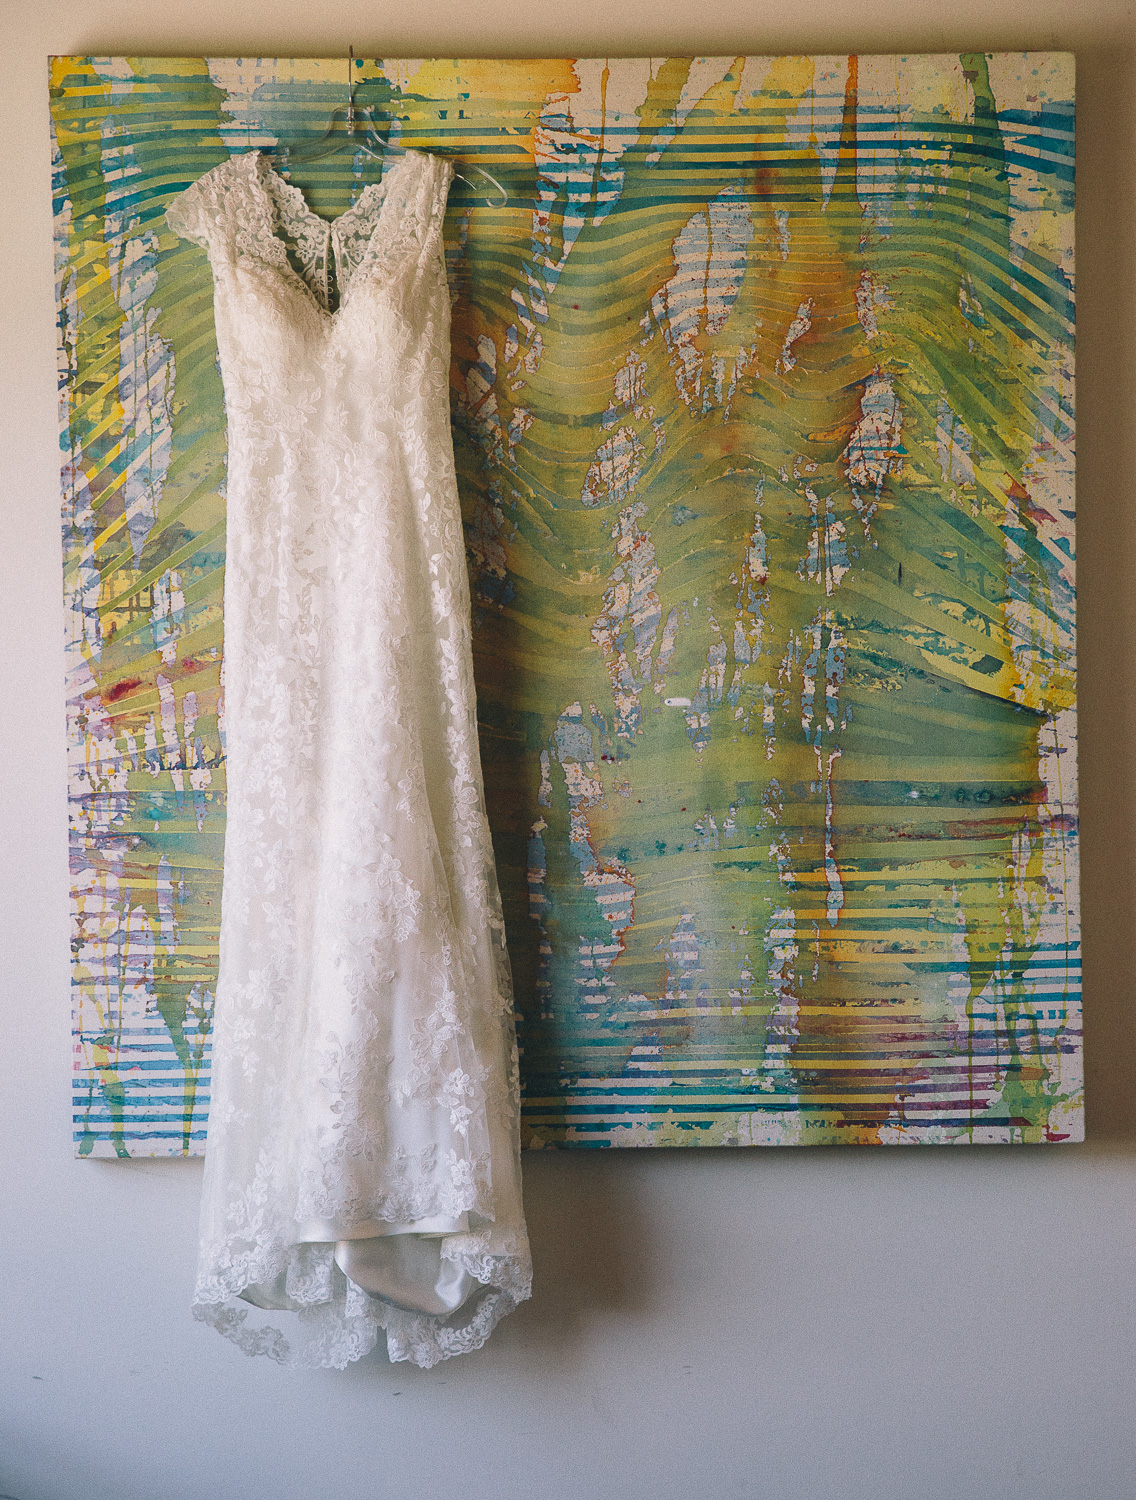 Lace wedding dress hanging on an abstract tropical painting at Hotel Ocho in Toronto